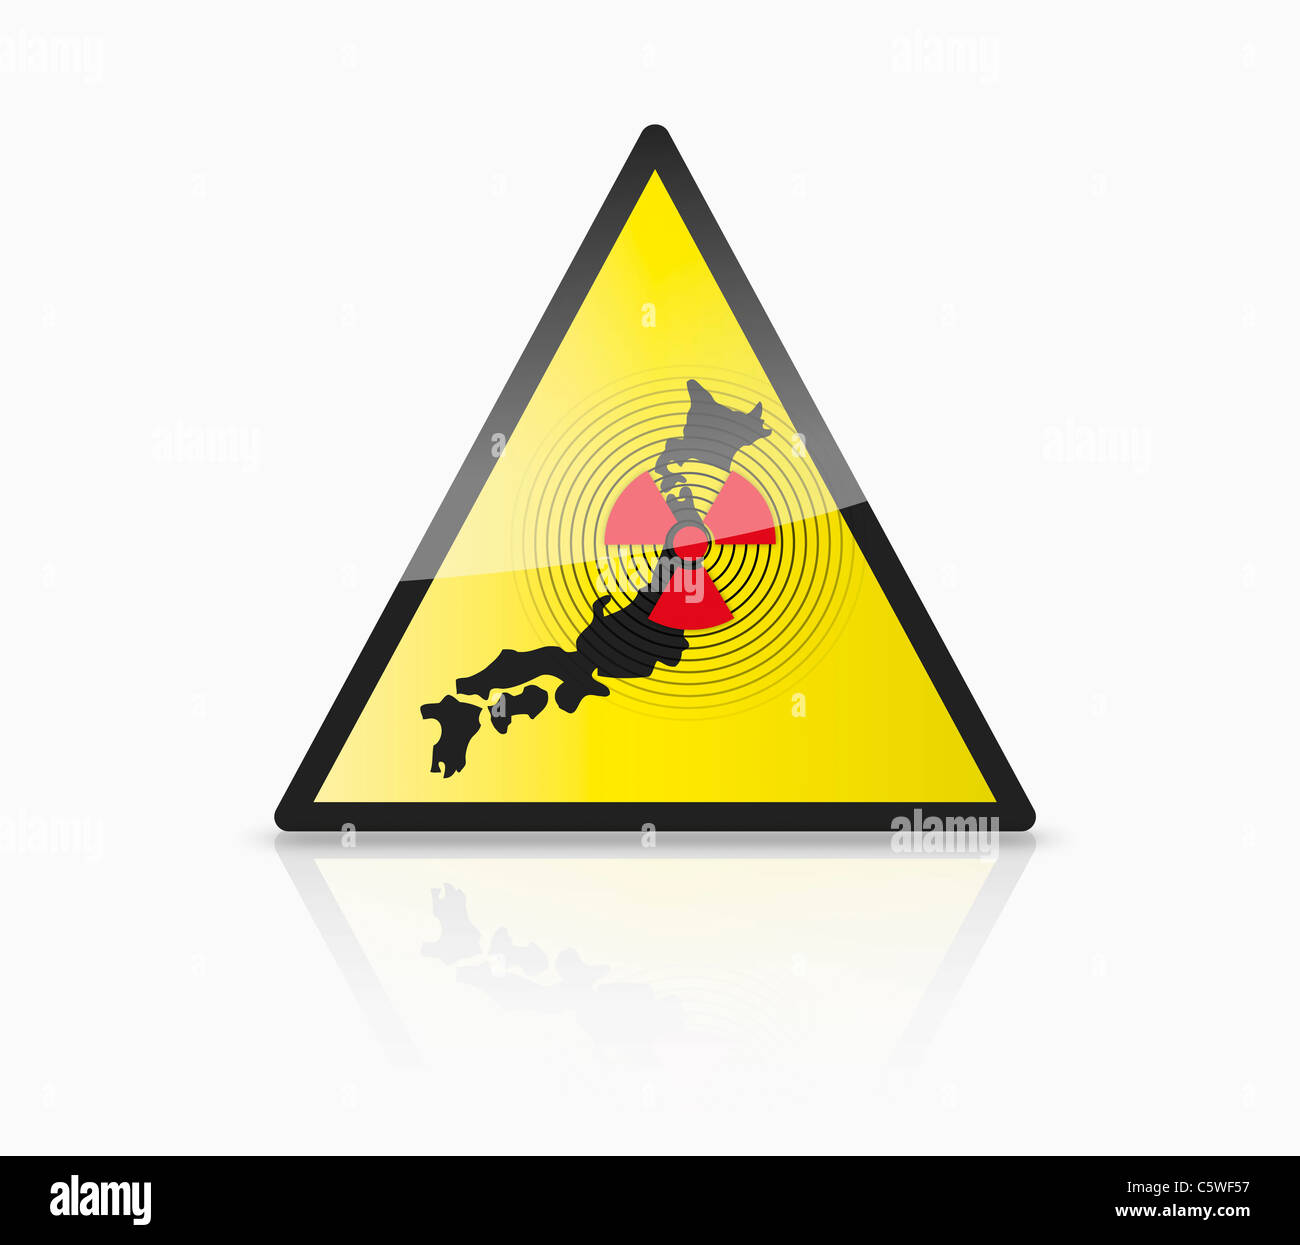 Close up of illustration of atom sign with japan map on triangle - Stock Image